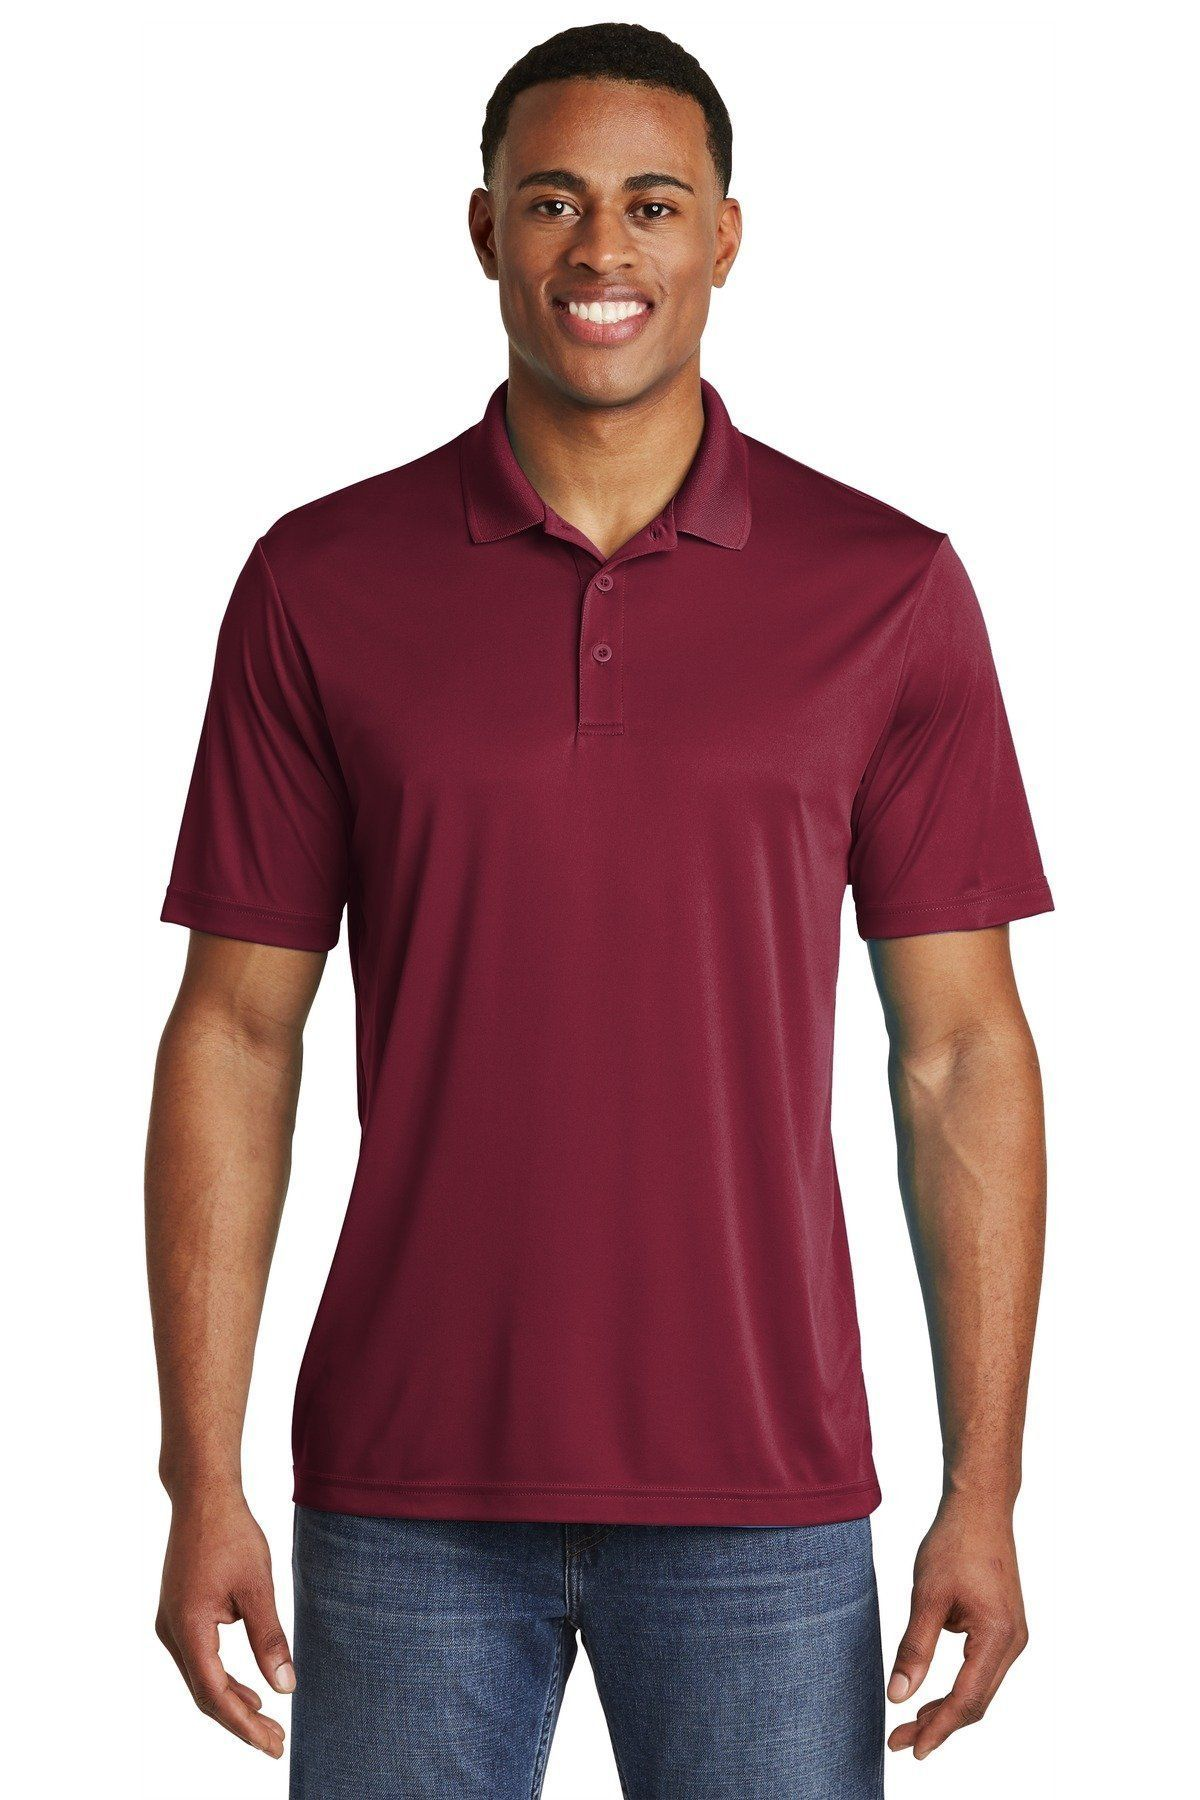 SportTek PosiCharge Competitor Polo. ST550 Maroon / 4XL